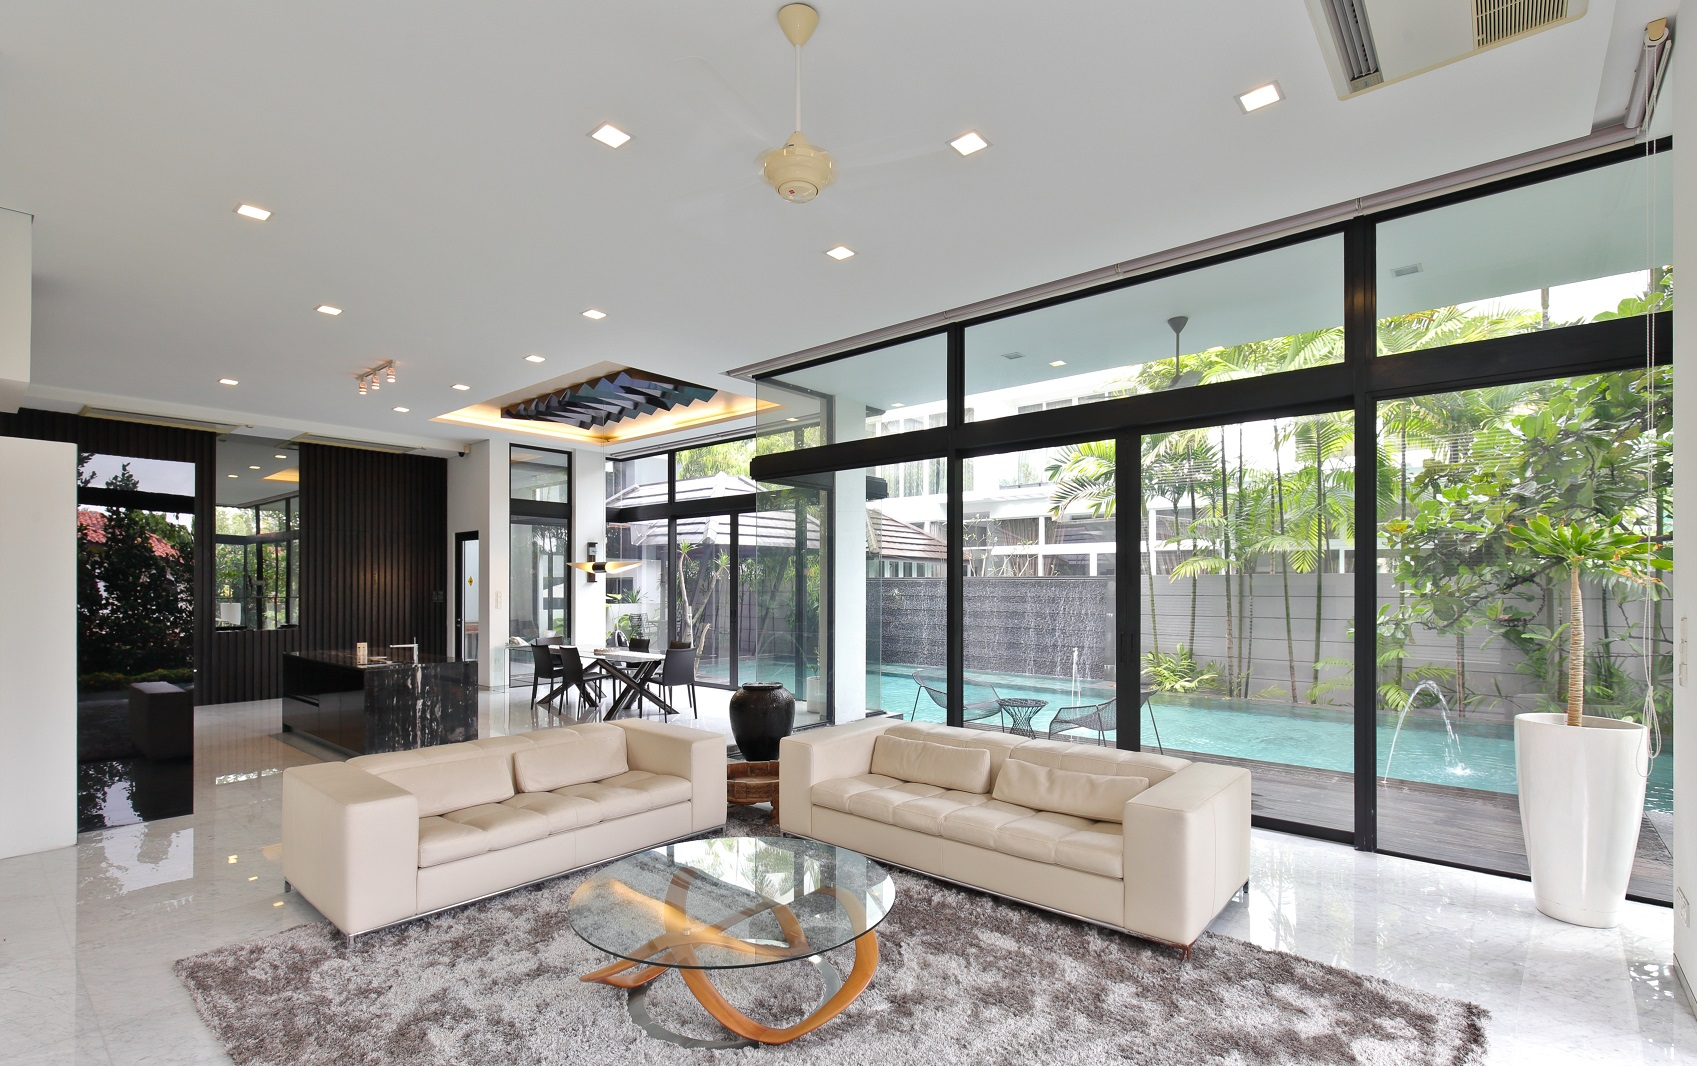 The first level of the house is where the living and dining area, a second open kitchen and an infinity swimming pool are situated (Photo: Samuel Isaac Chua/EdgeProp Singapore)